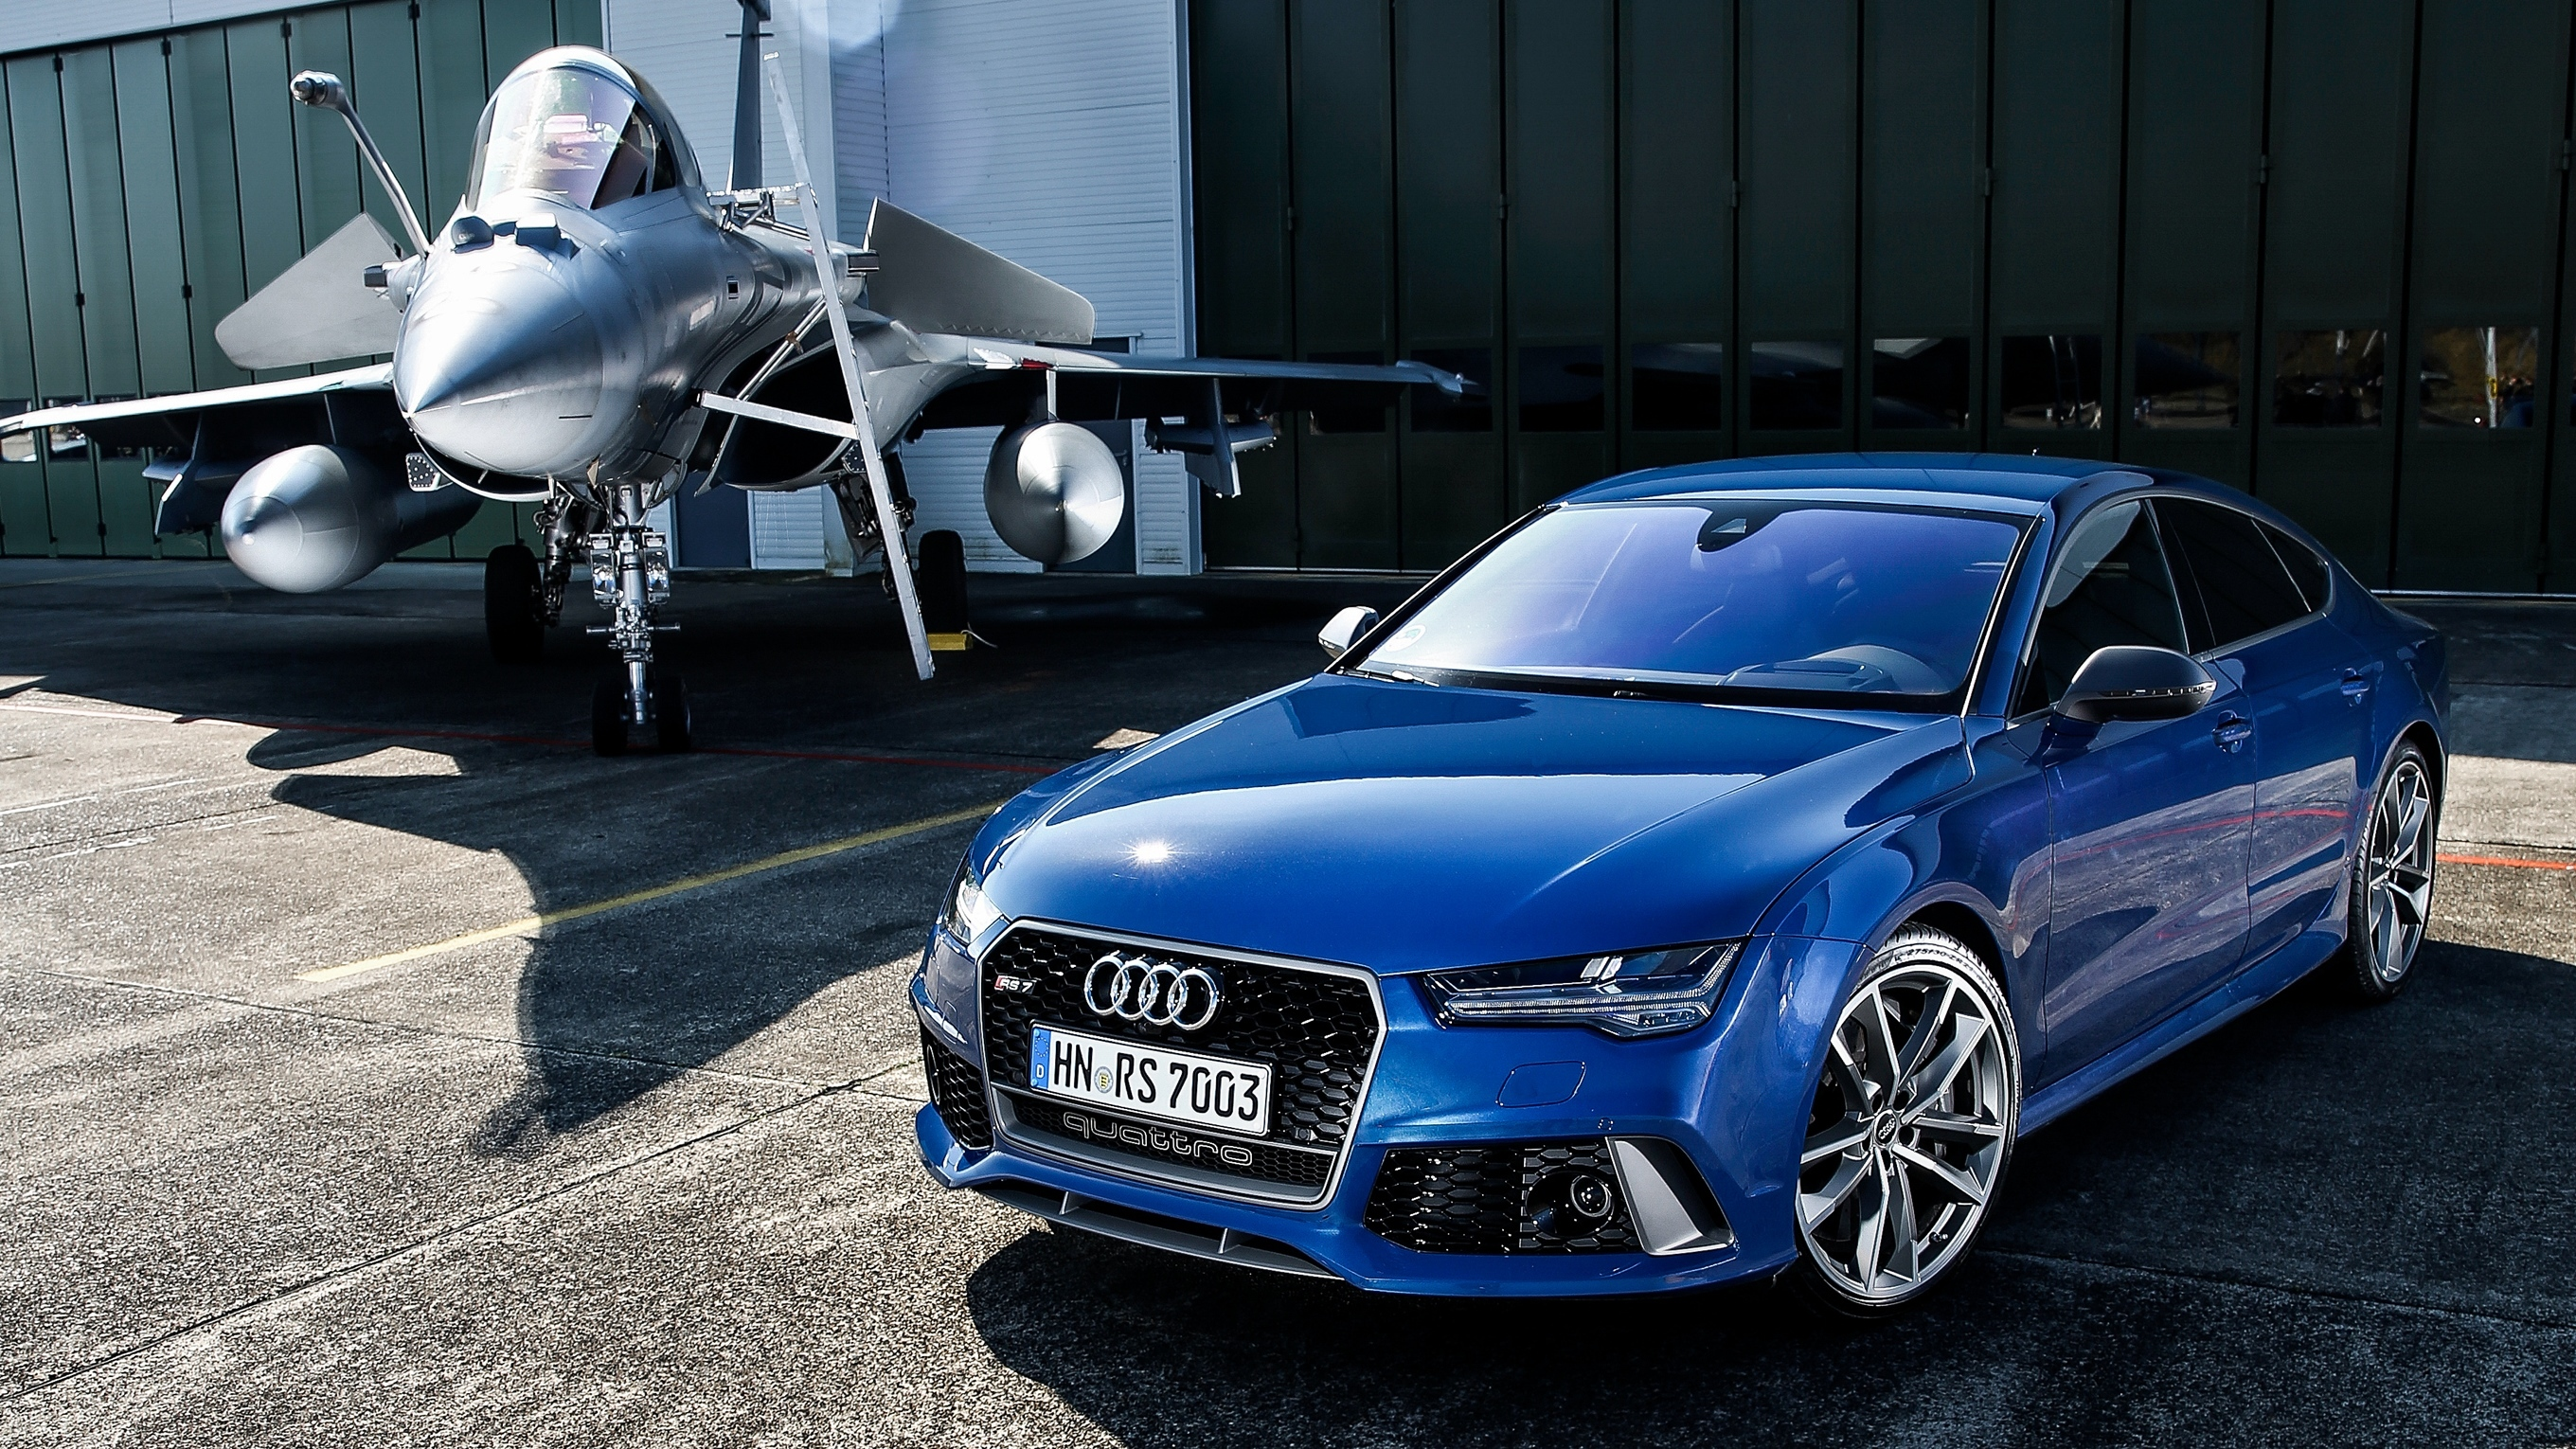 Audi RS7 Wallpapers, Pictures, Images